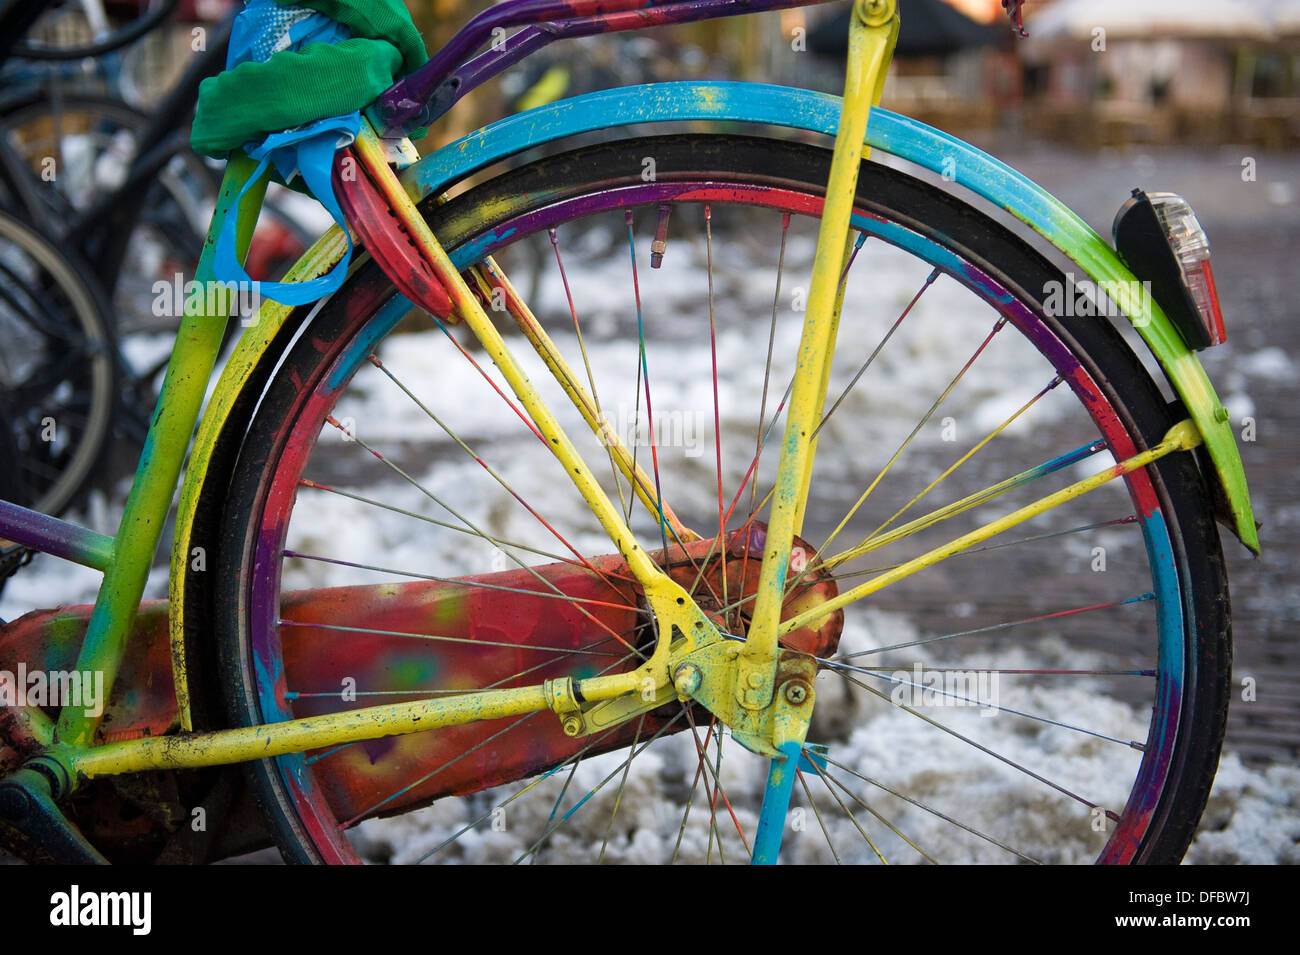 Dutch bicycle painted in different colors, closeup detail, Amersfoort, Netherlands - Stock Image